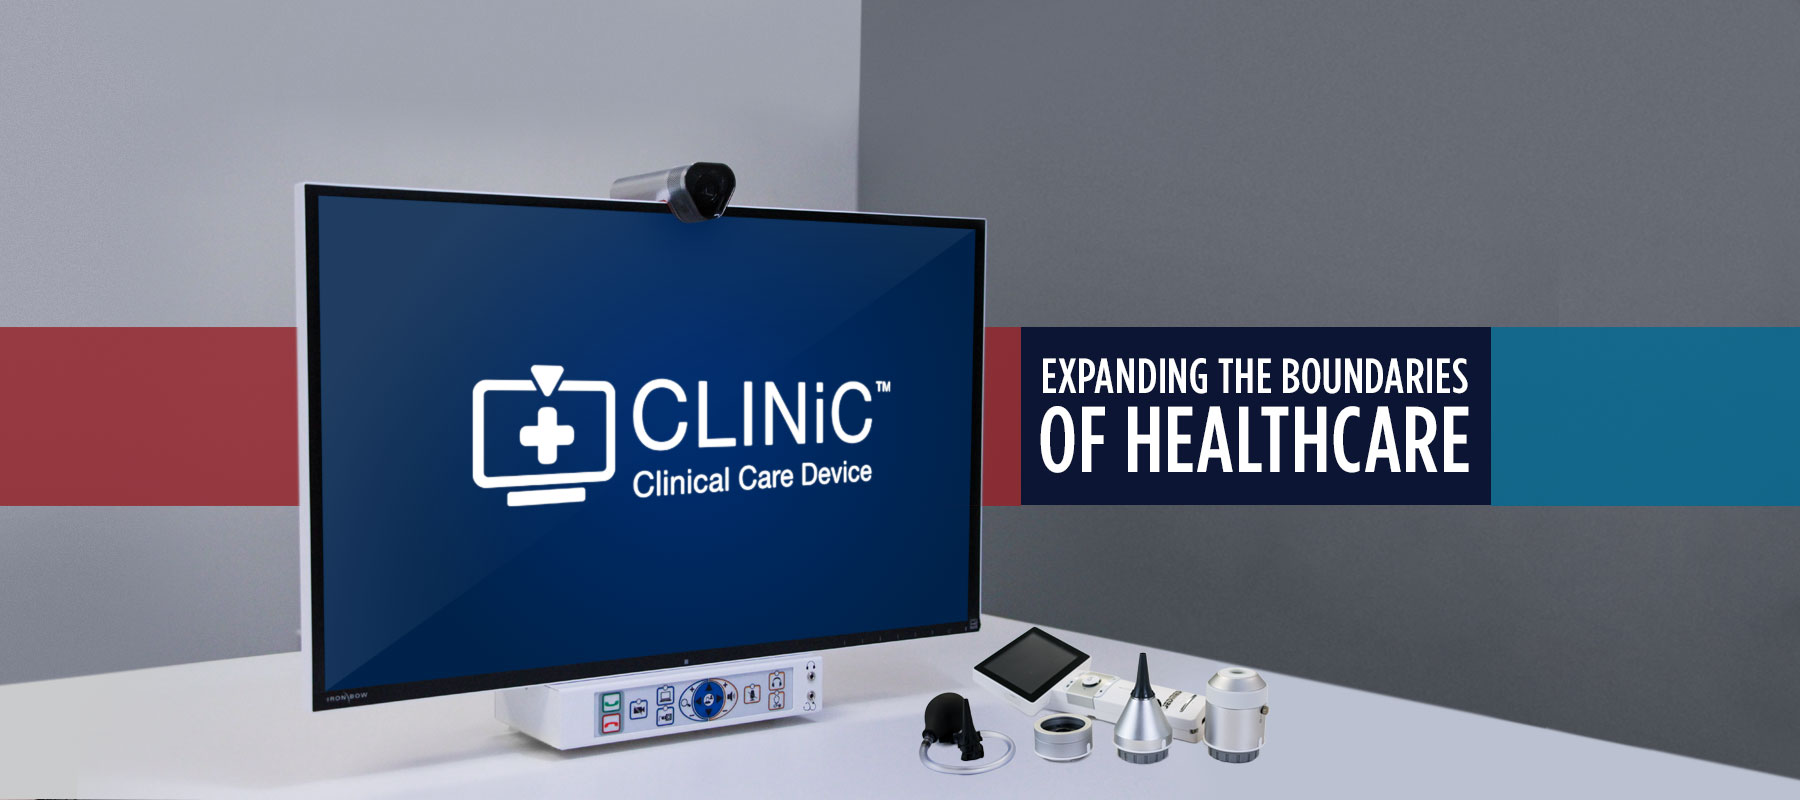 CLINic Device